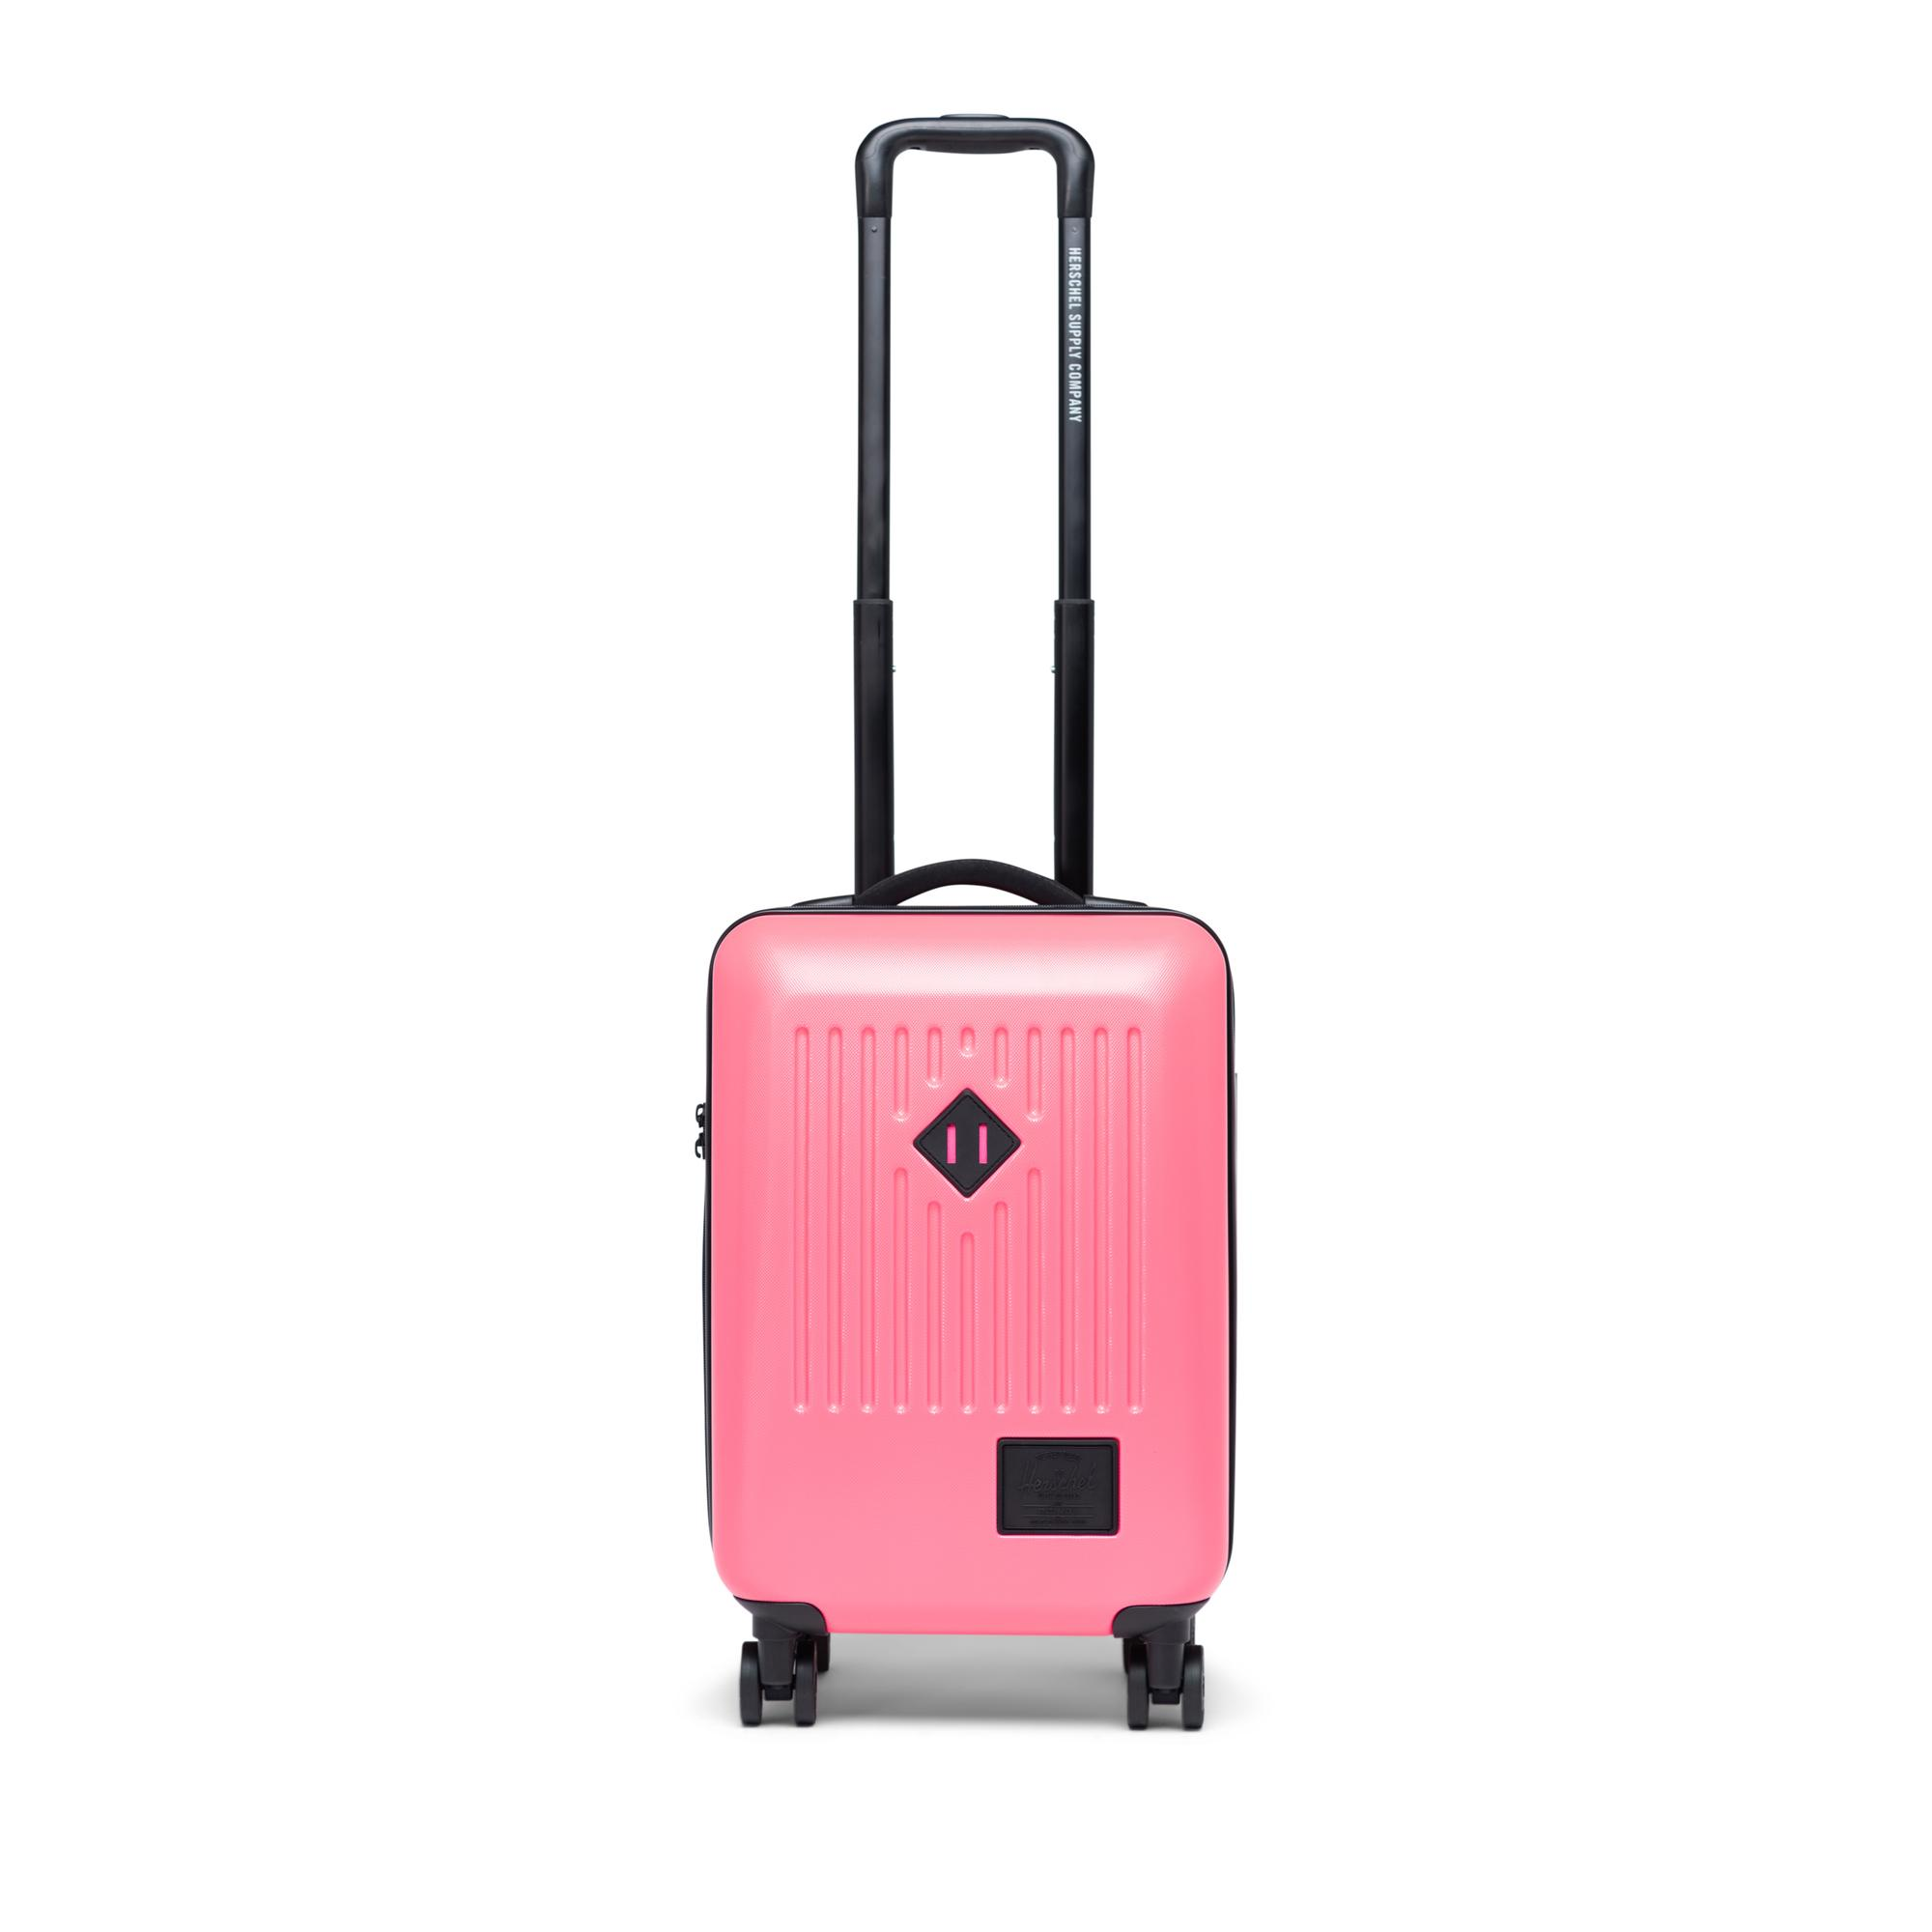 Rose-neon-colors Travel Carry-on Luggage Weekender Bag Overnight Tote Flight Duffel In Trolley Handle